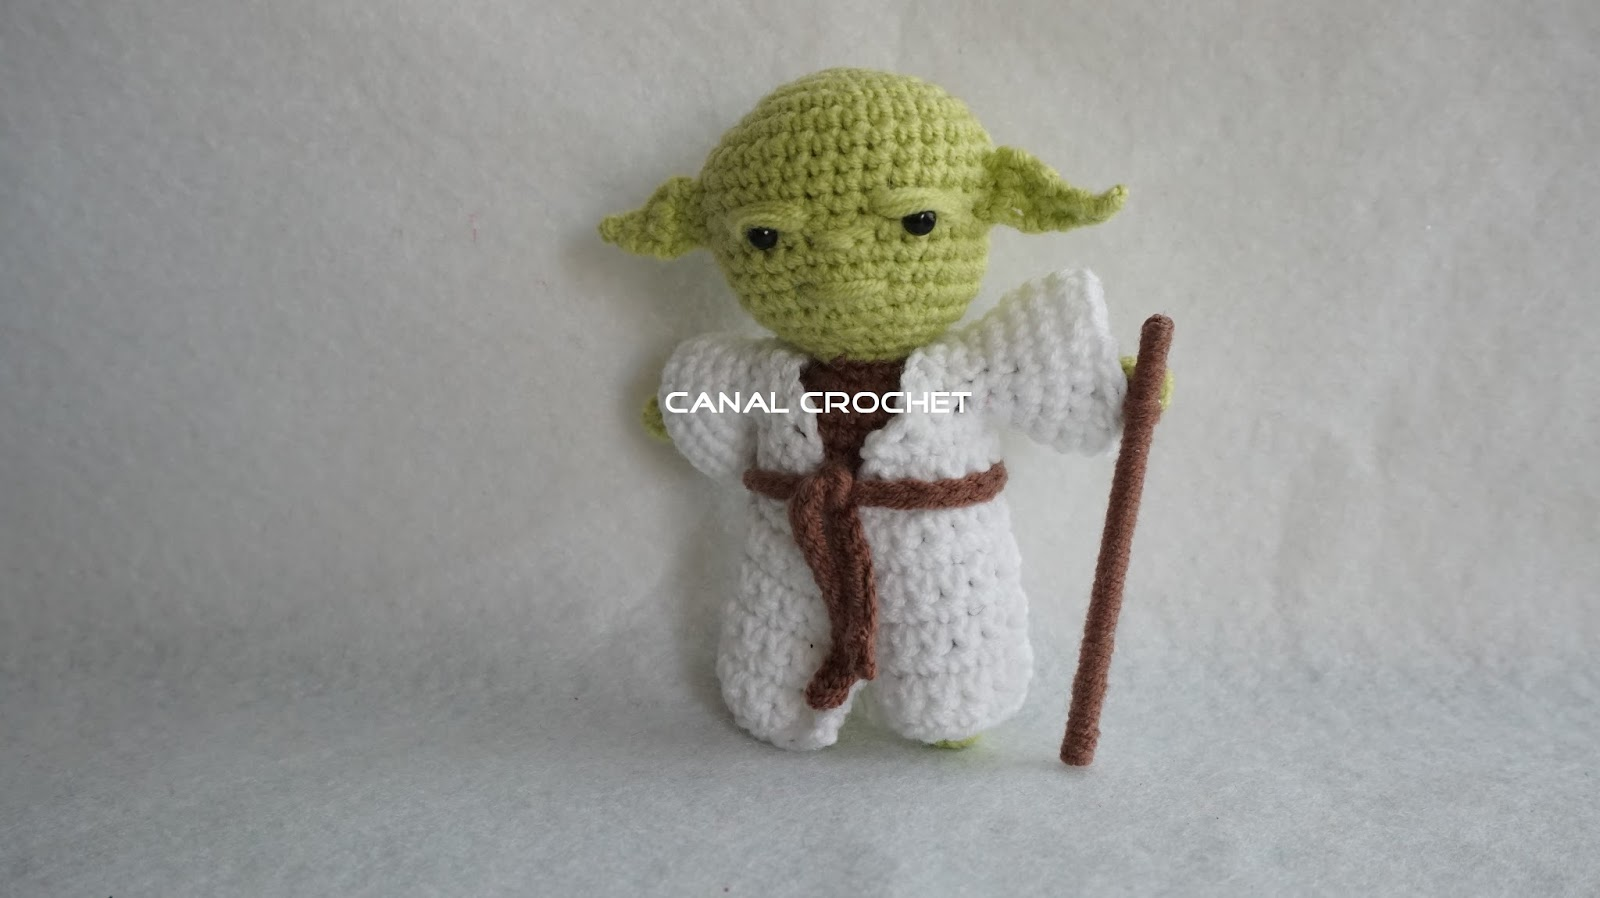 CANAL CROCHET: Stars wars 2 tutorial